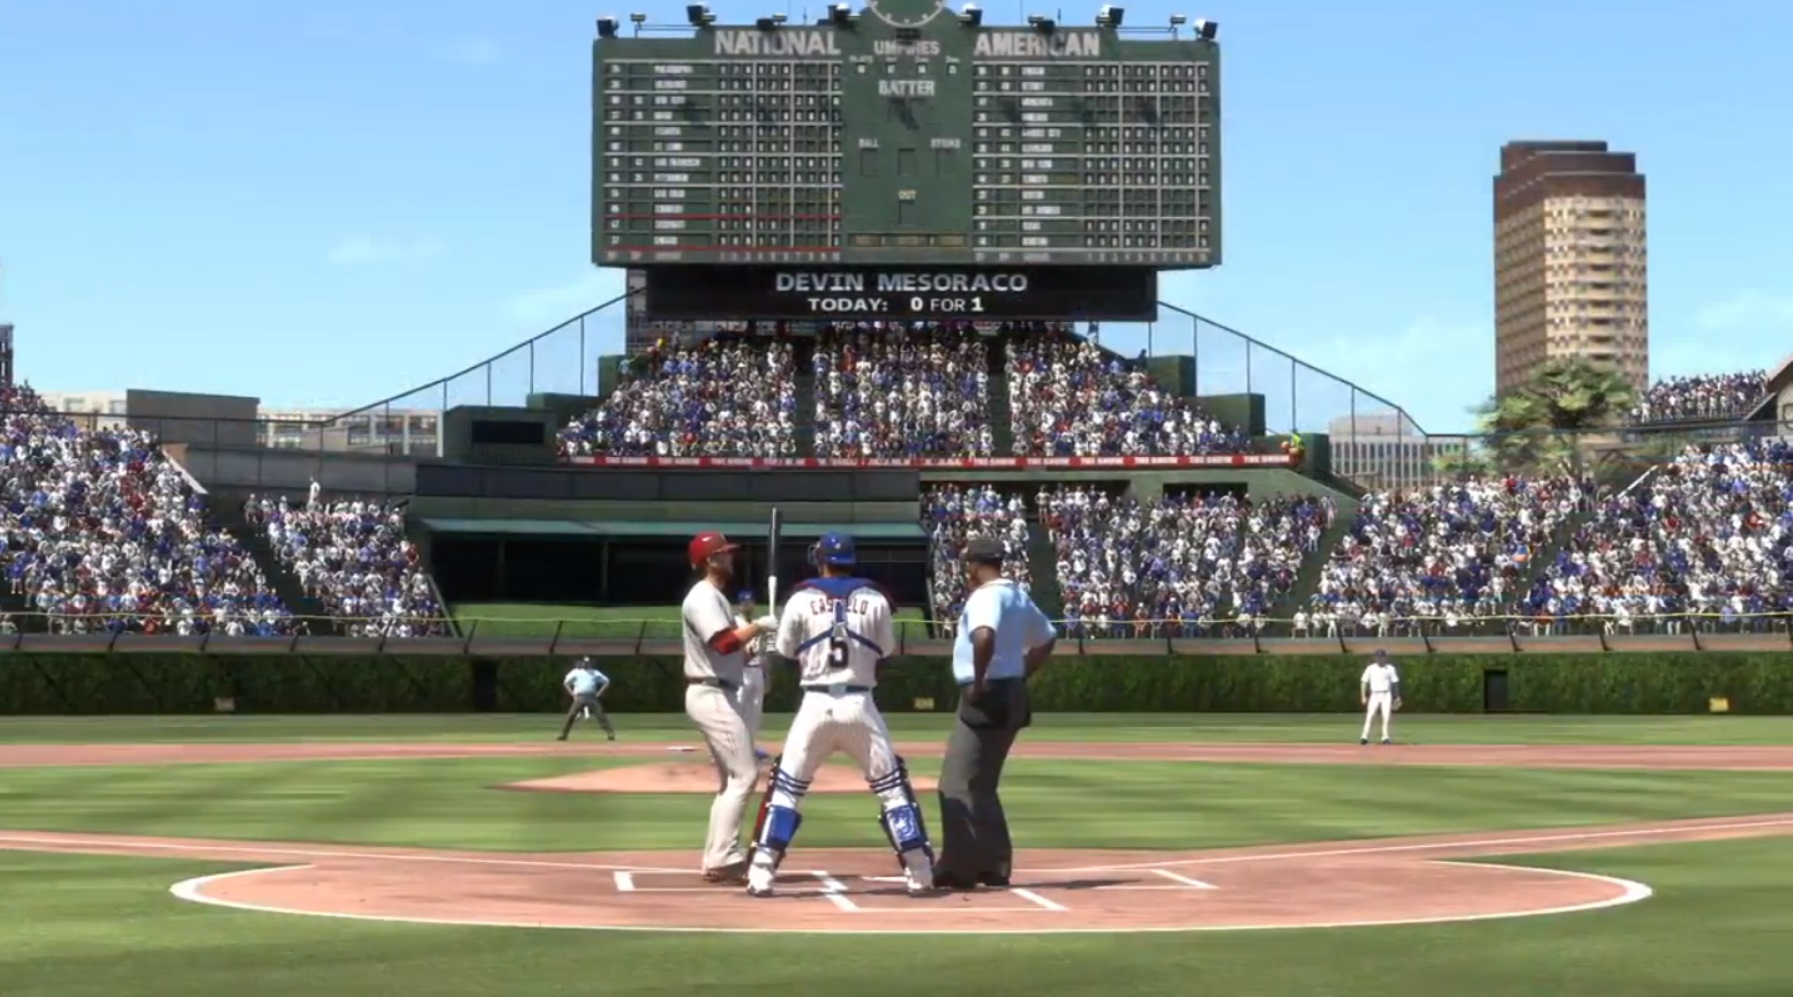 Mlb 14 The Show Video Arrives To Exploit A Key Gap In The Xbox Ones